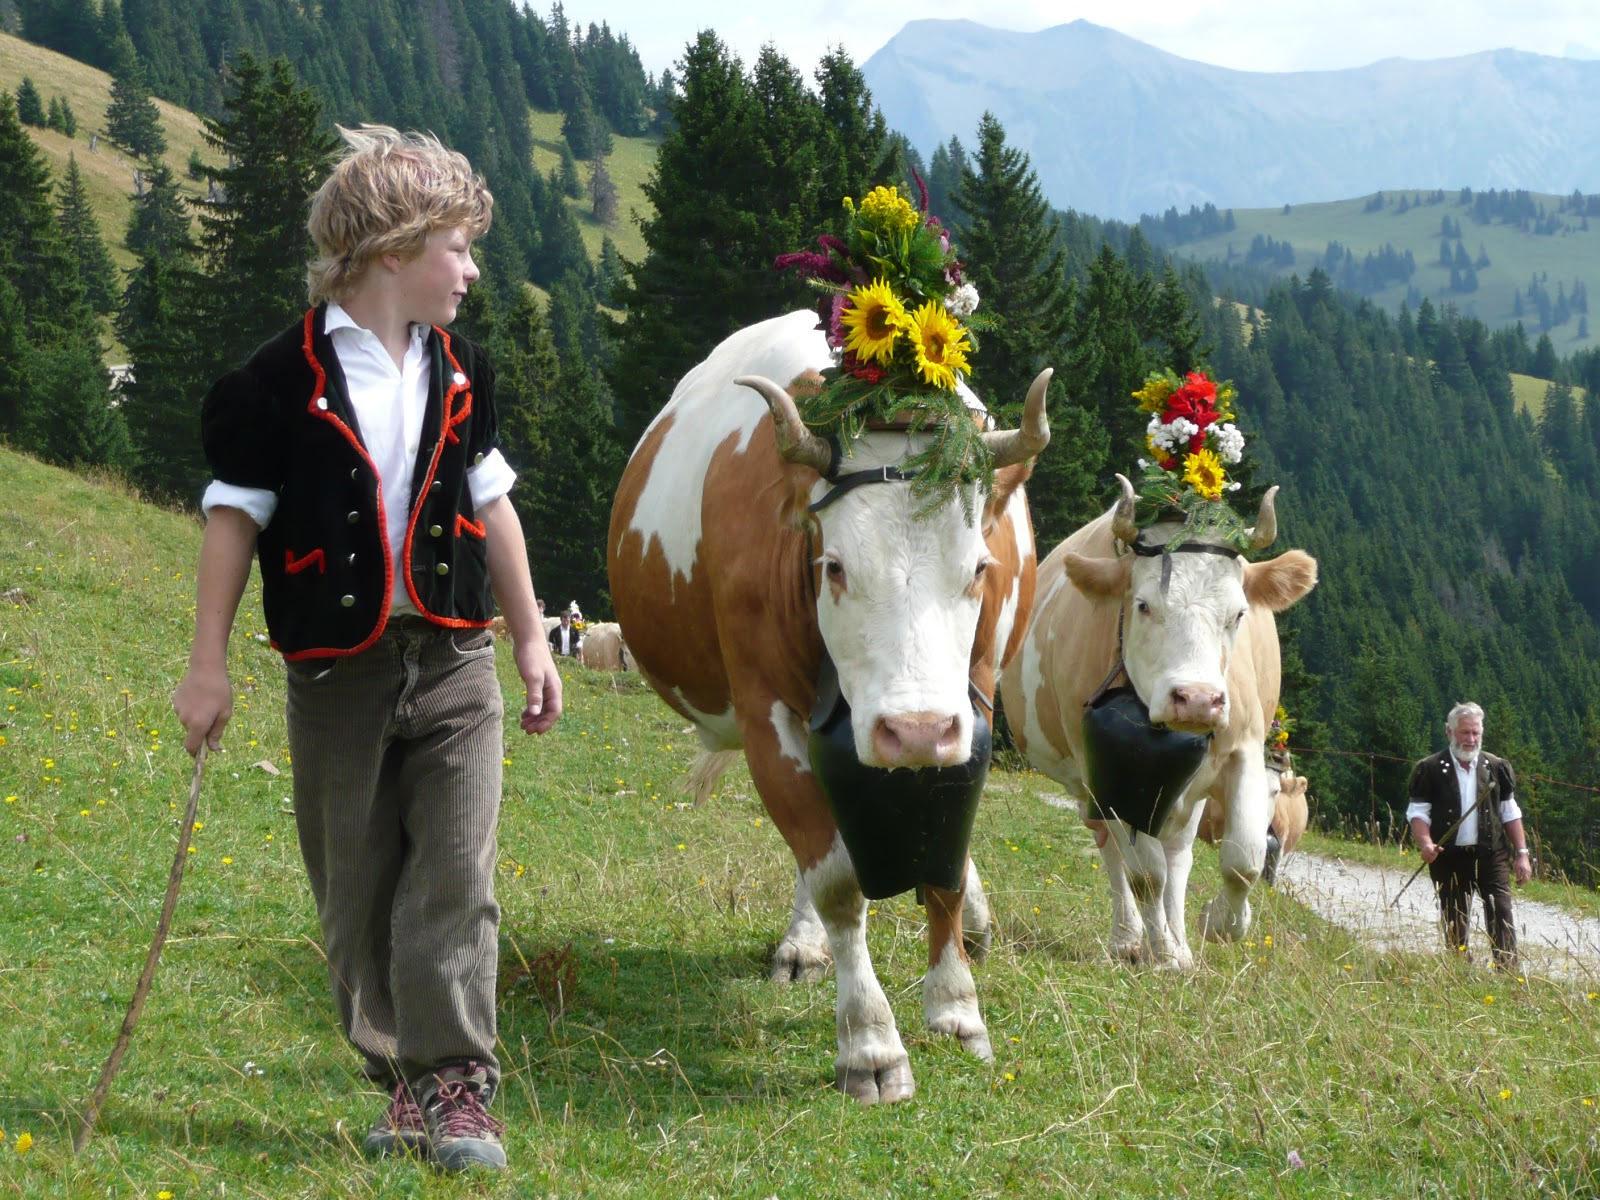 'Züglete'—a must-see for families especially with children. Photo: Gstaad Saanenland Tourismus.